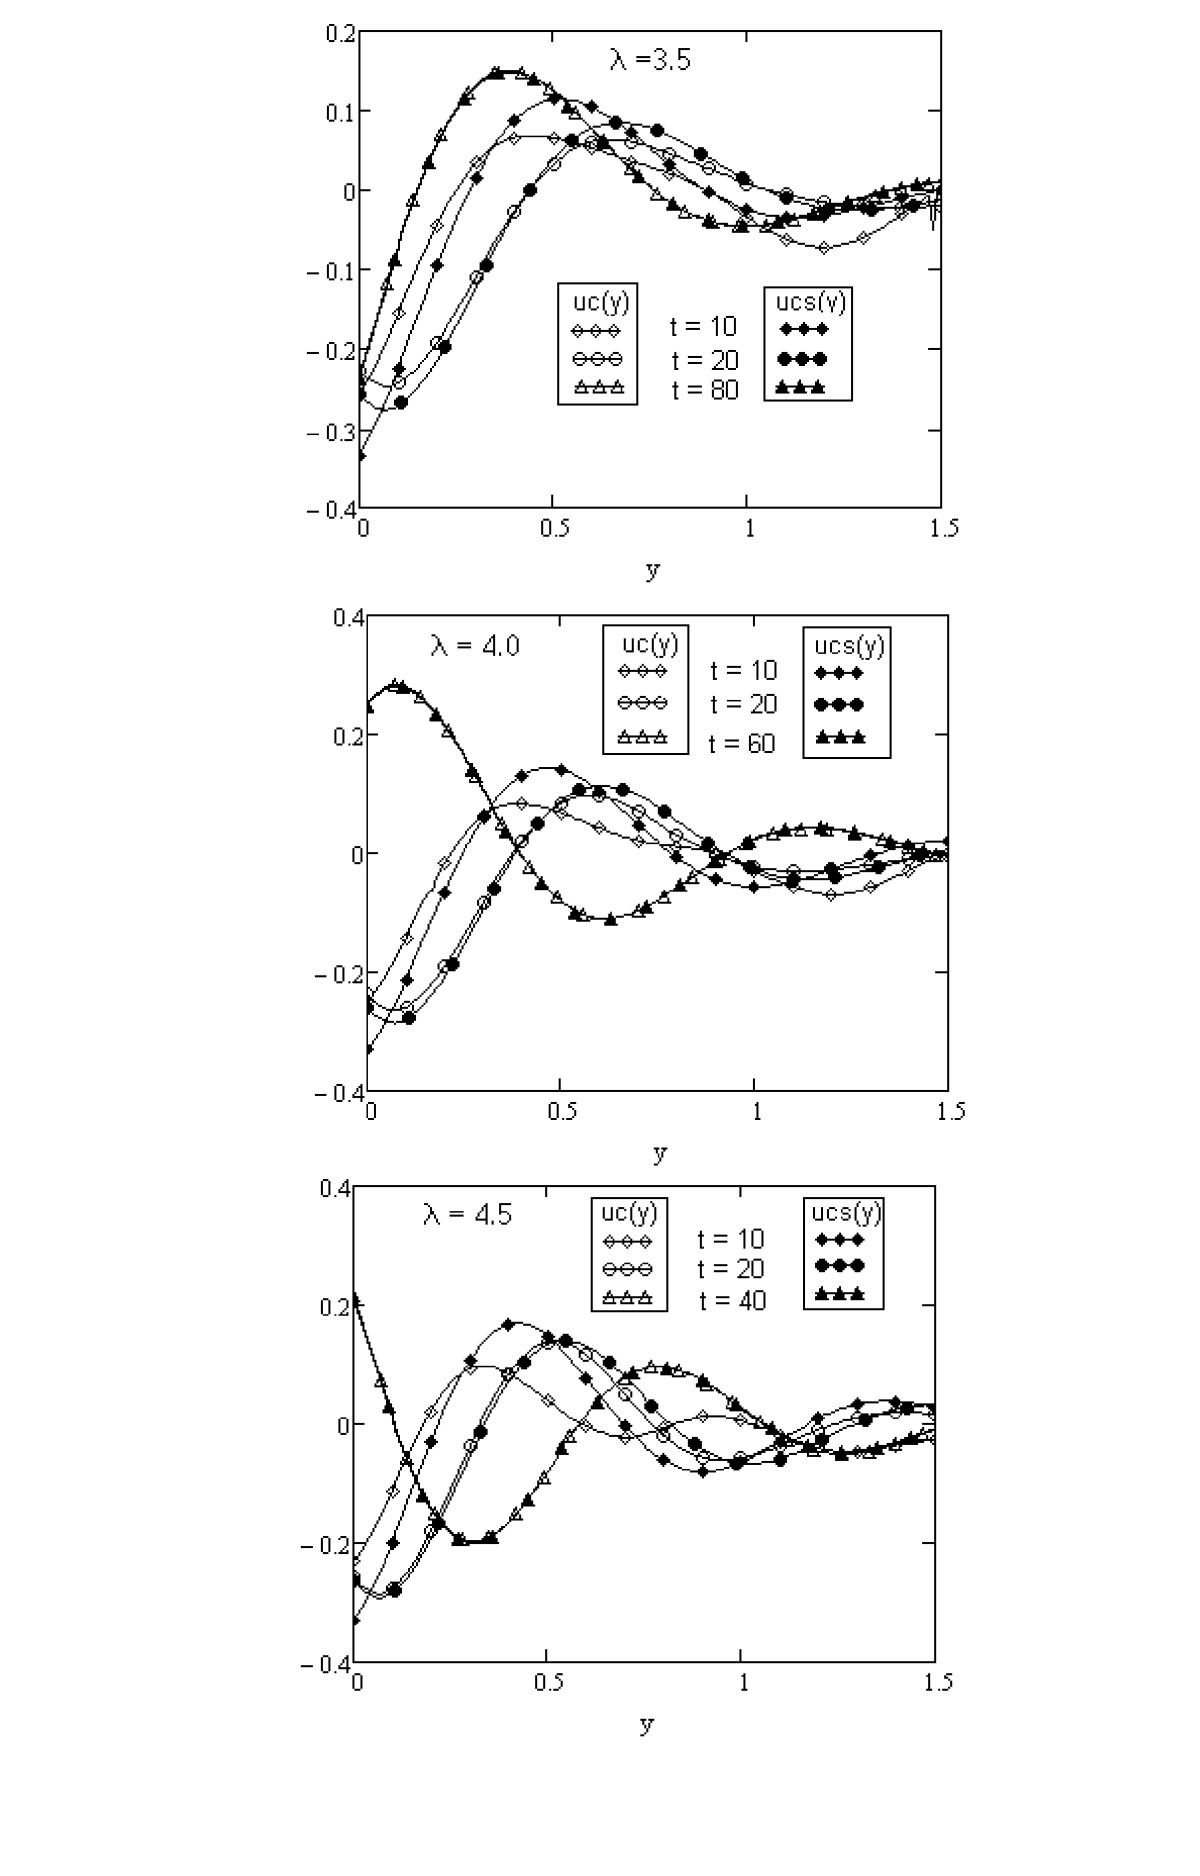 http://static-content.springer.com/image/art%3A10.1186%2F1687-2770-2012-48/MediaObjects/13661_2011_Article_139_Fig5_HTML.jpg